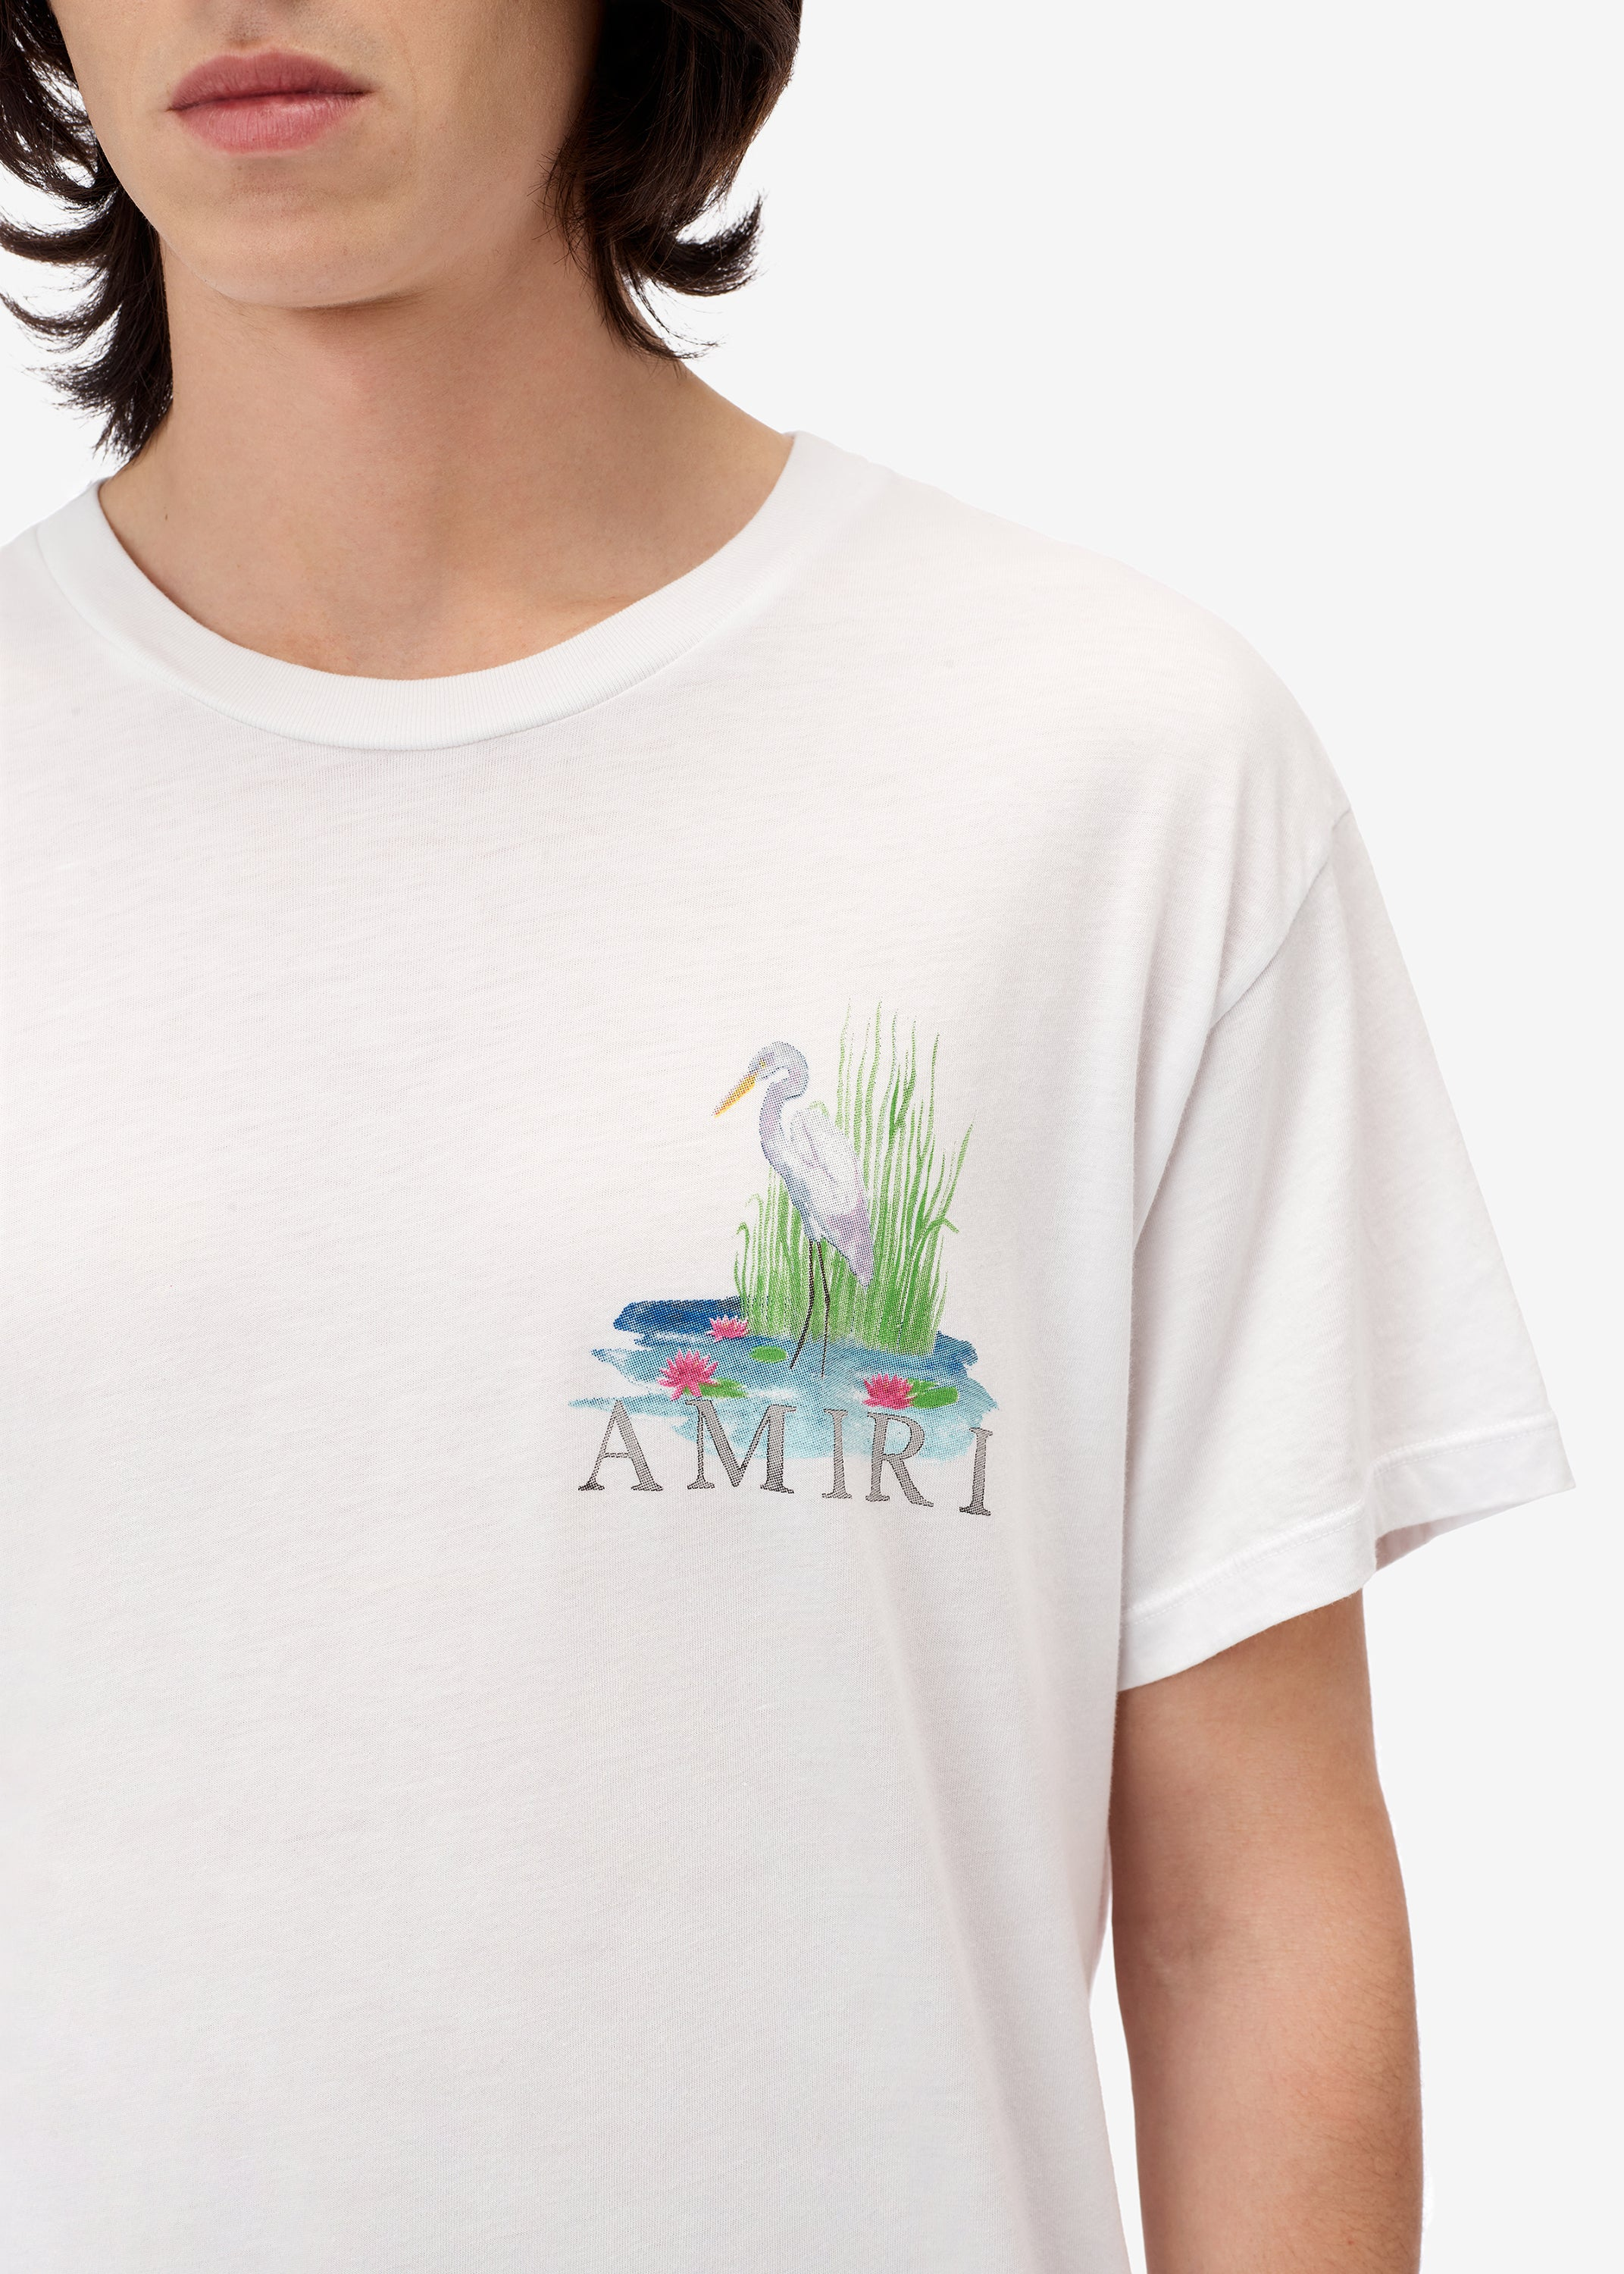 standing-egret-tee-web-exclusive-white-image-4